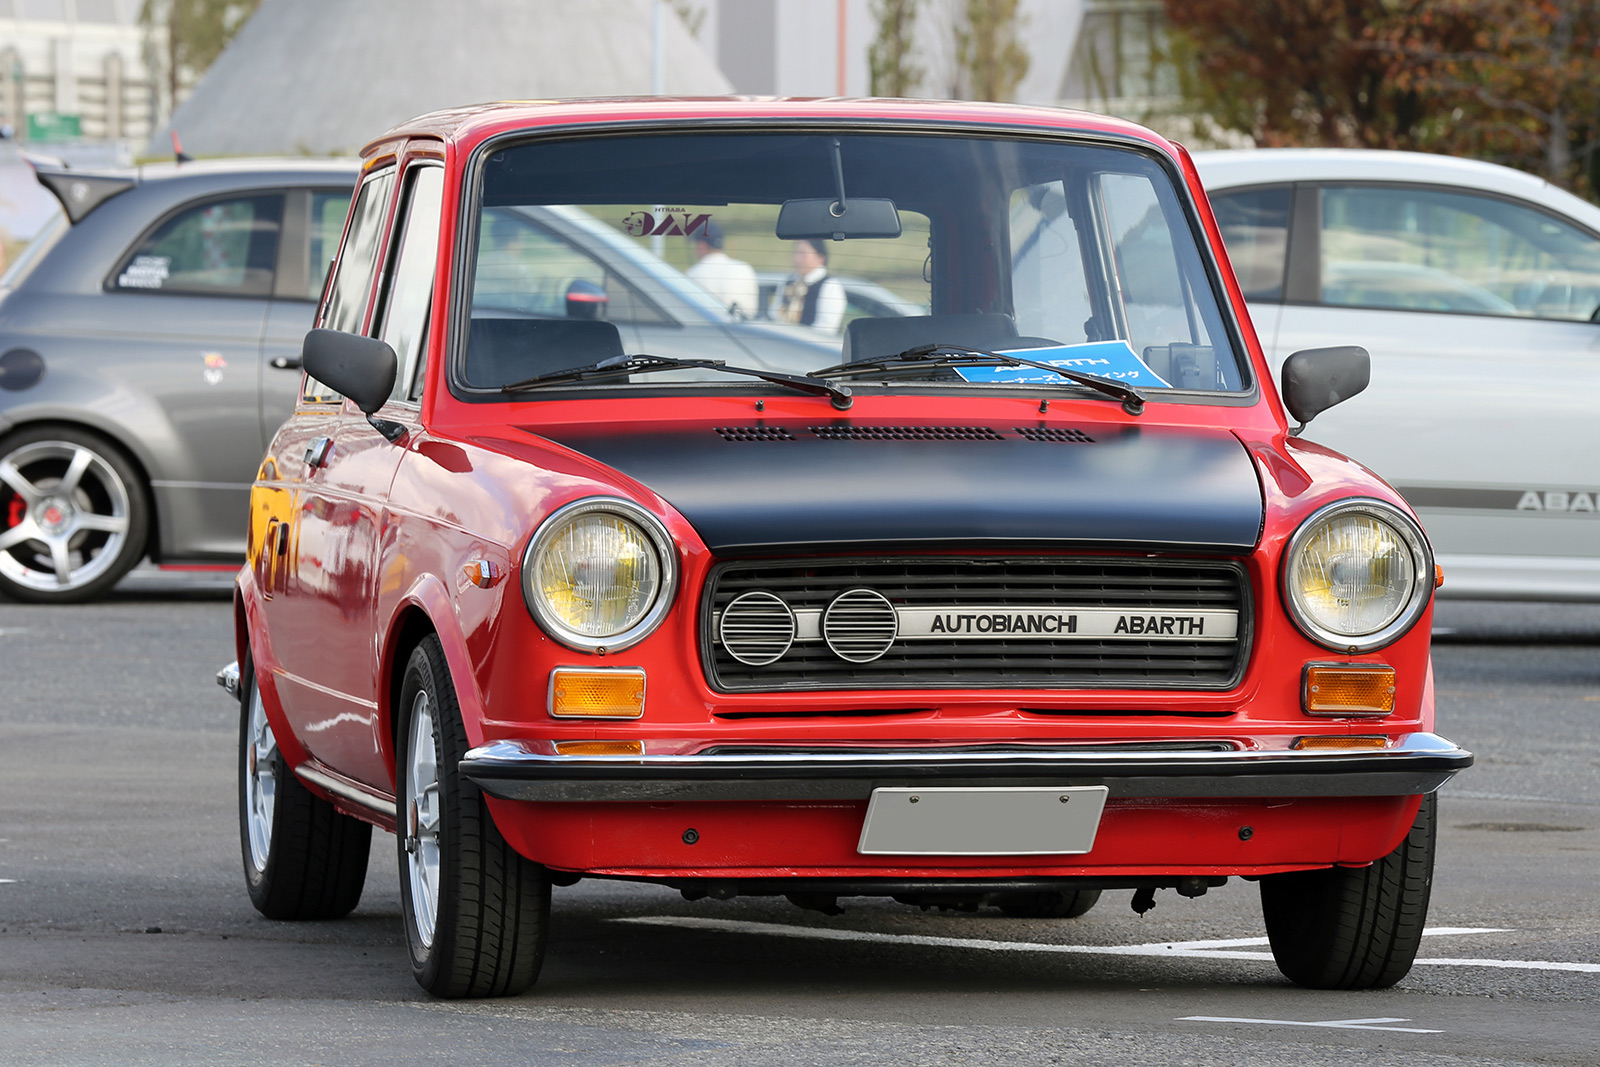 Abarth_day_03